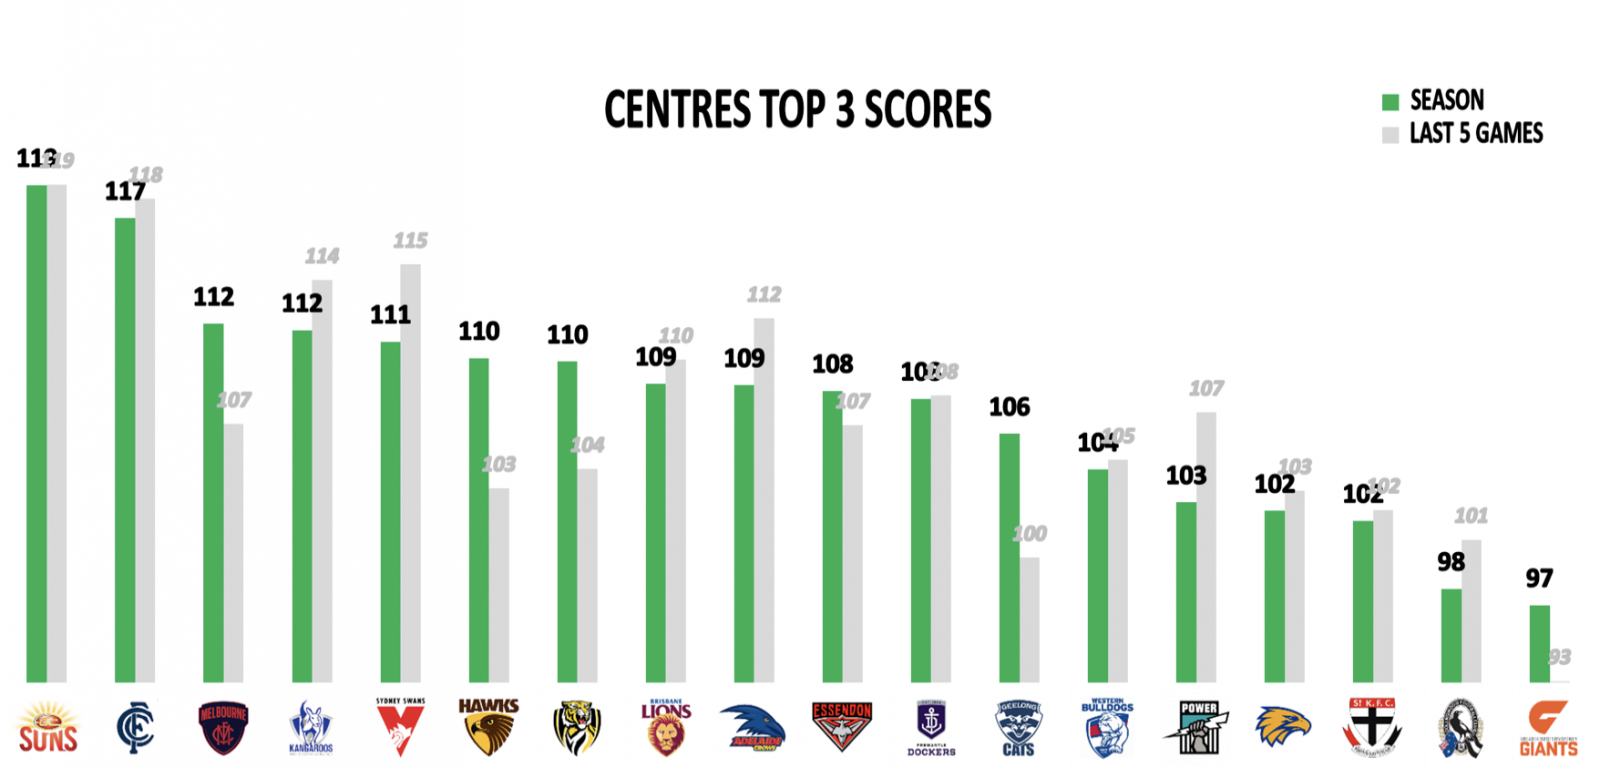 Centres top 3 points